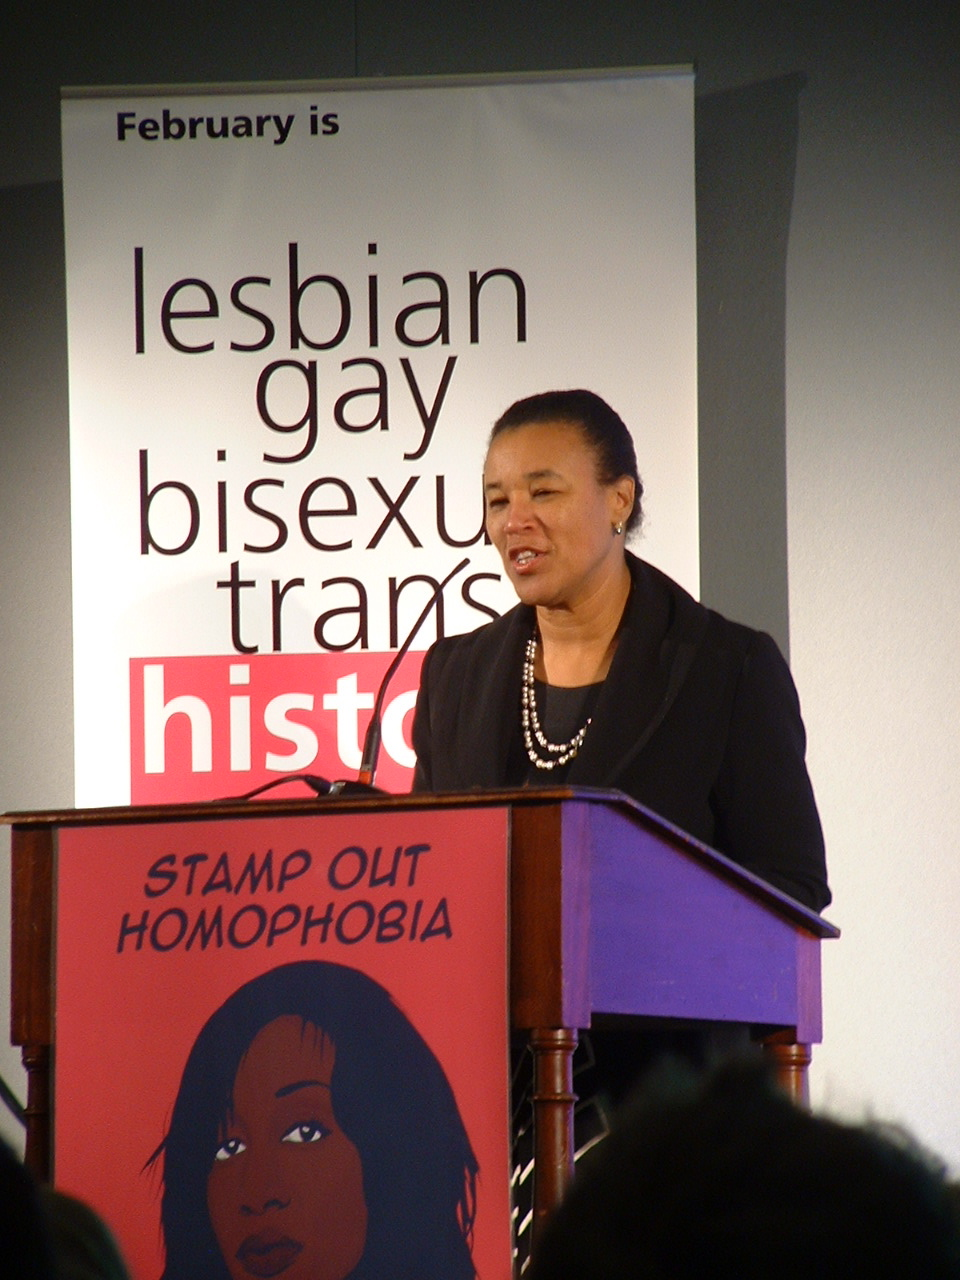 Patricia Scotland, Baroness Scotland of Asthal QC, Attorney General, speaking at the pre-launch of LGBT History Month 08 at the Royal Courts of Justice on 26 November 2007.